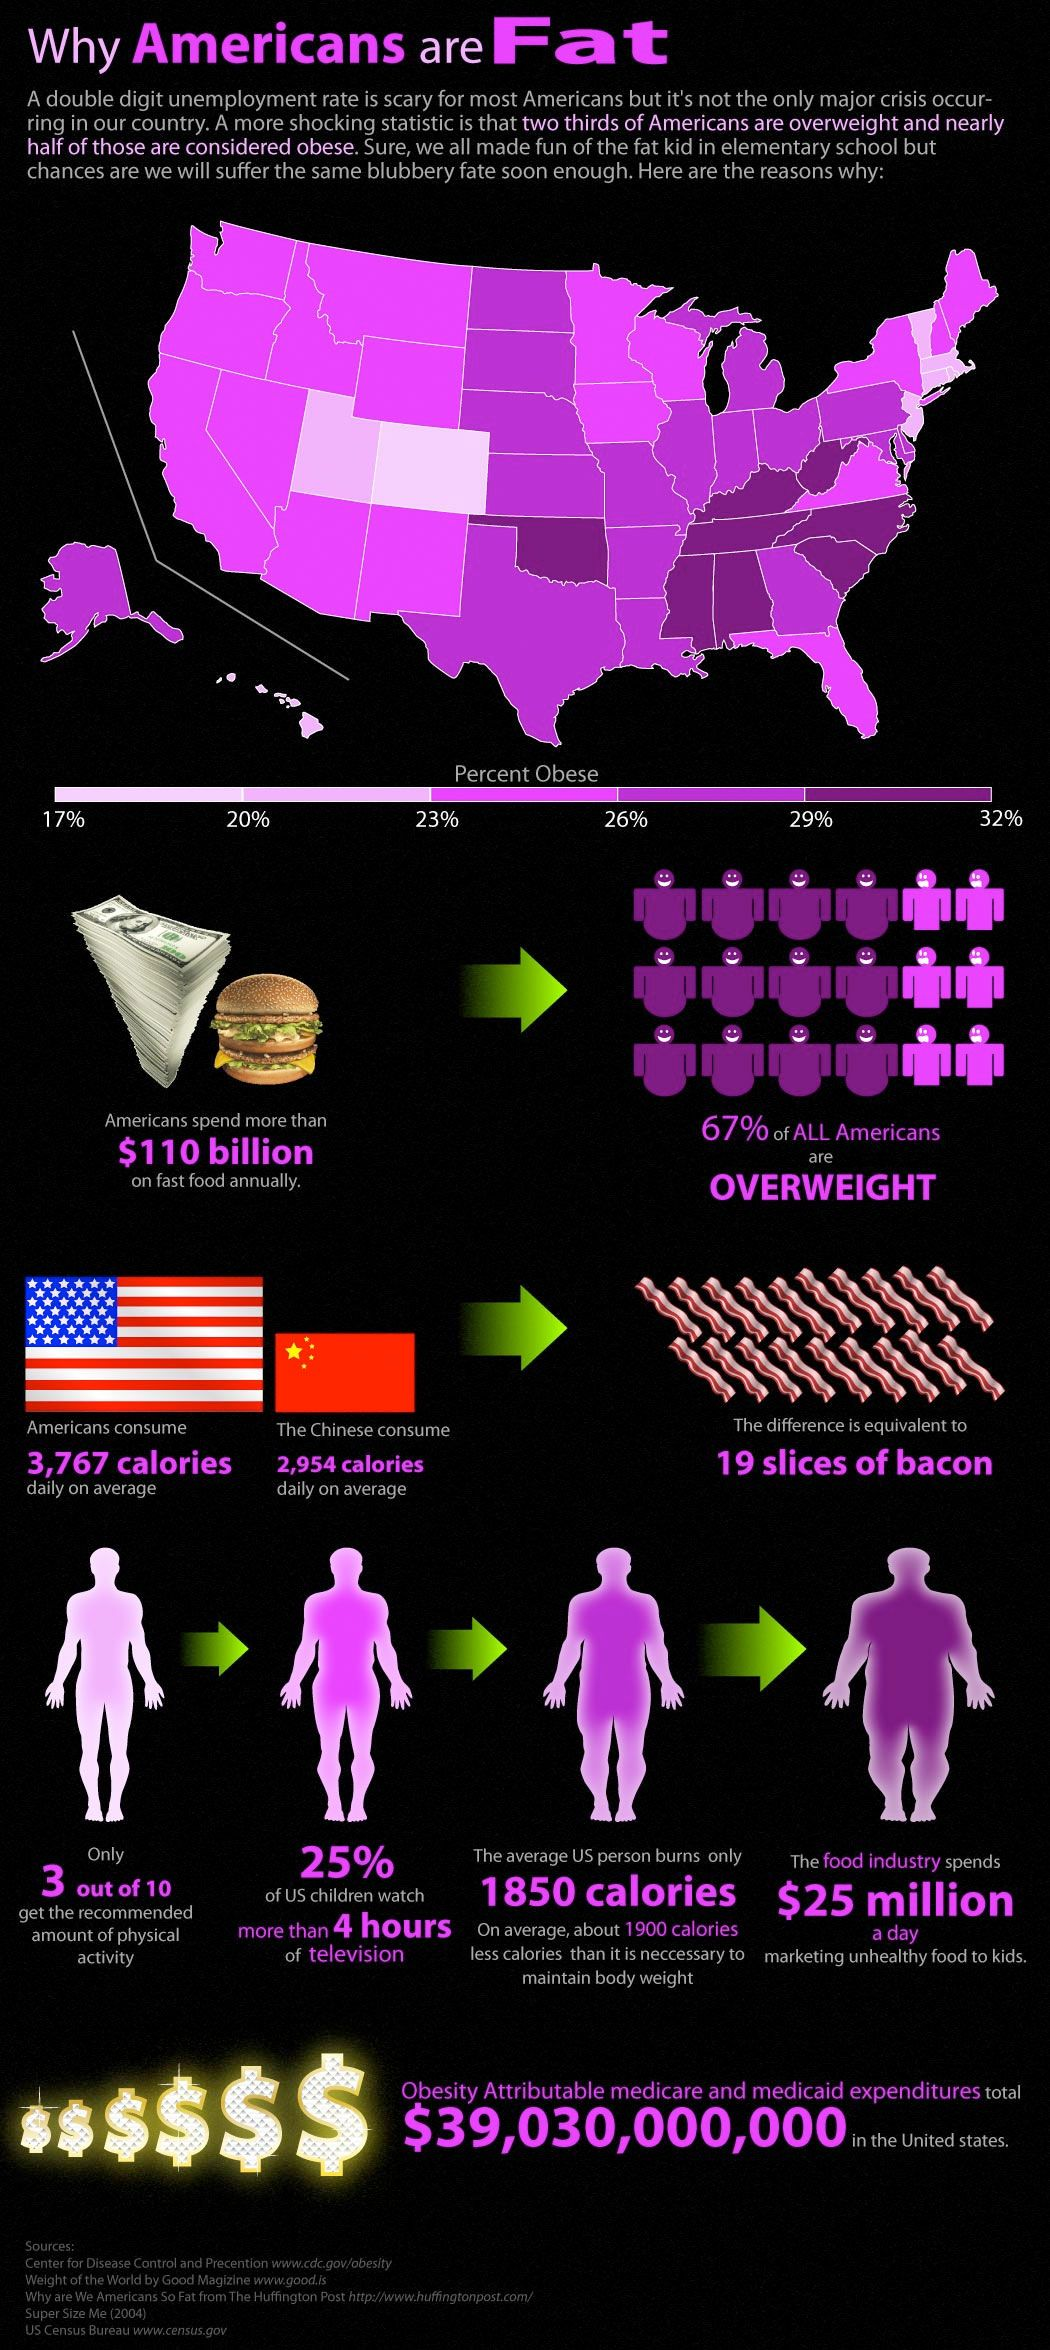 America lifestyle lends to the alarming rate of obesity